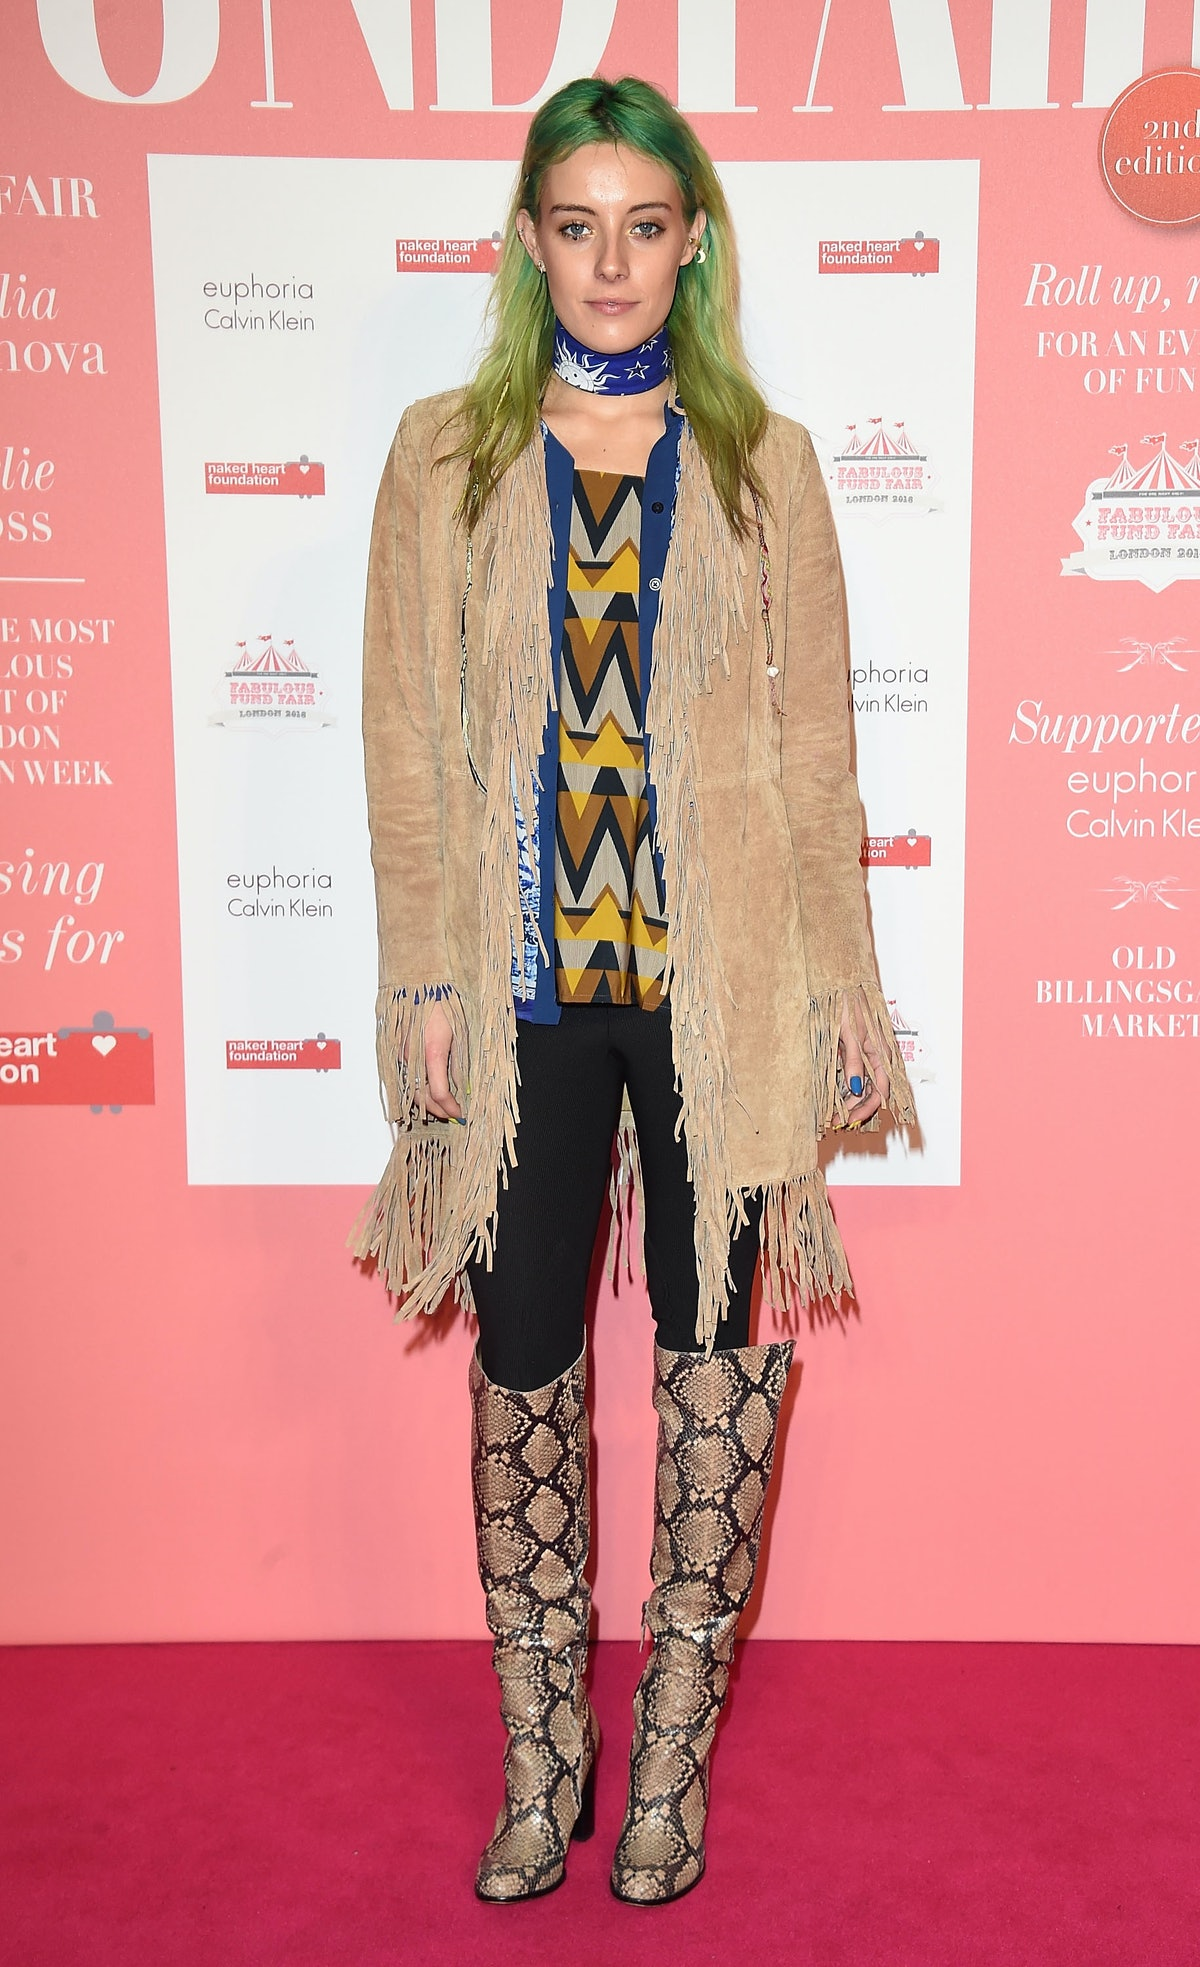 The Naked Heart Foundation's Fabulous Fund Fair In London - Arrivals